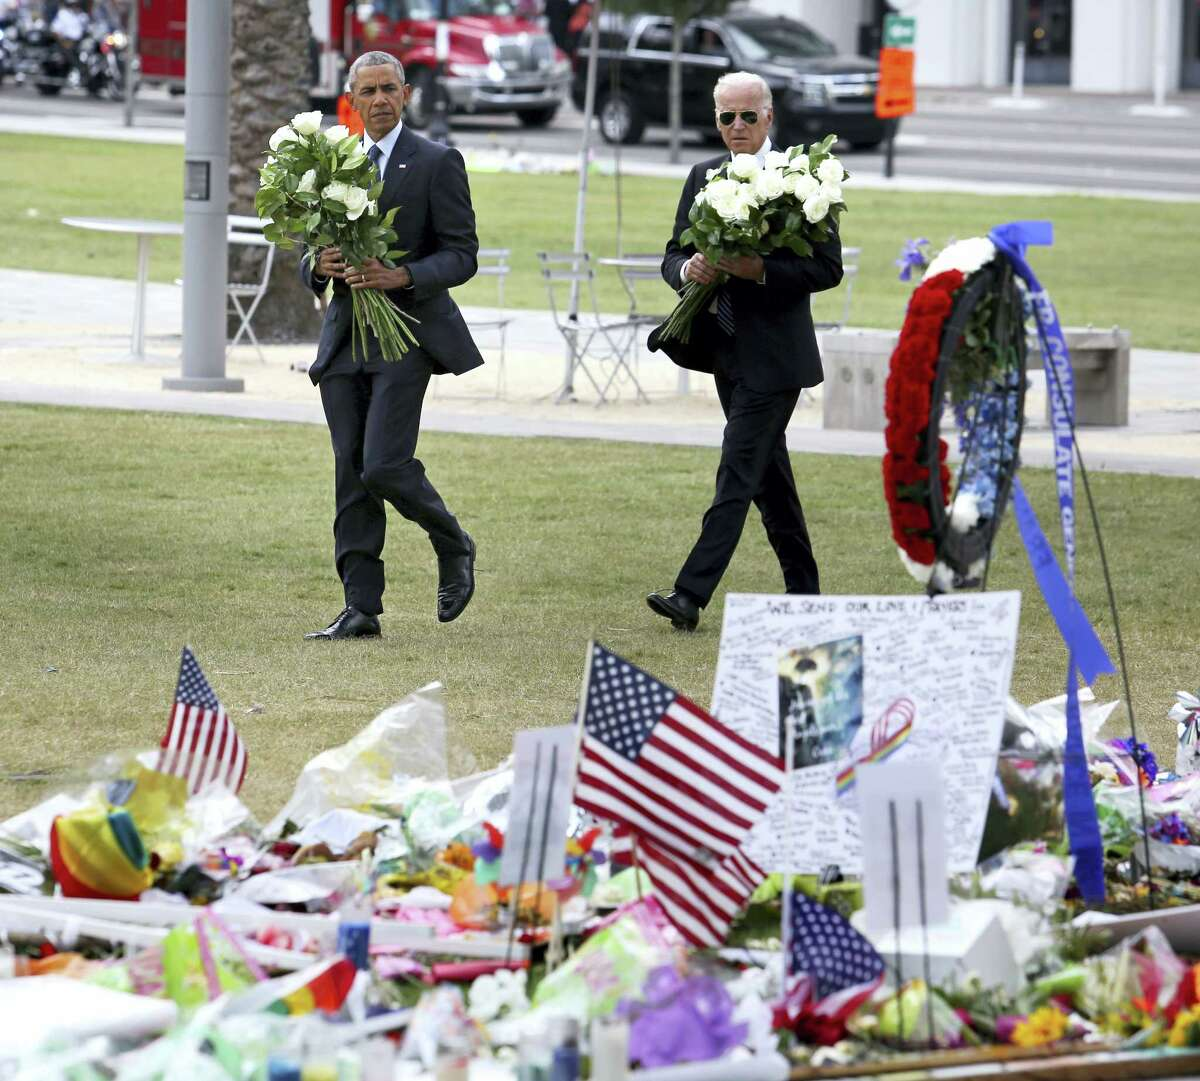 President Barack Obama and Vice President Joe Biden visit a makeshift memorial to the victims of the Pulse nightclub shooting, Thursday, June 16, 2016, in Orlando, Fla.